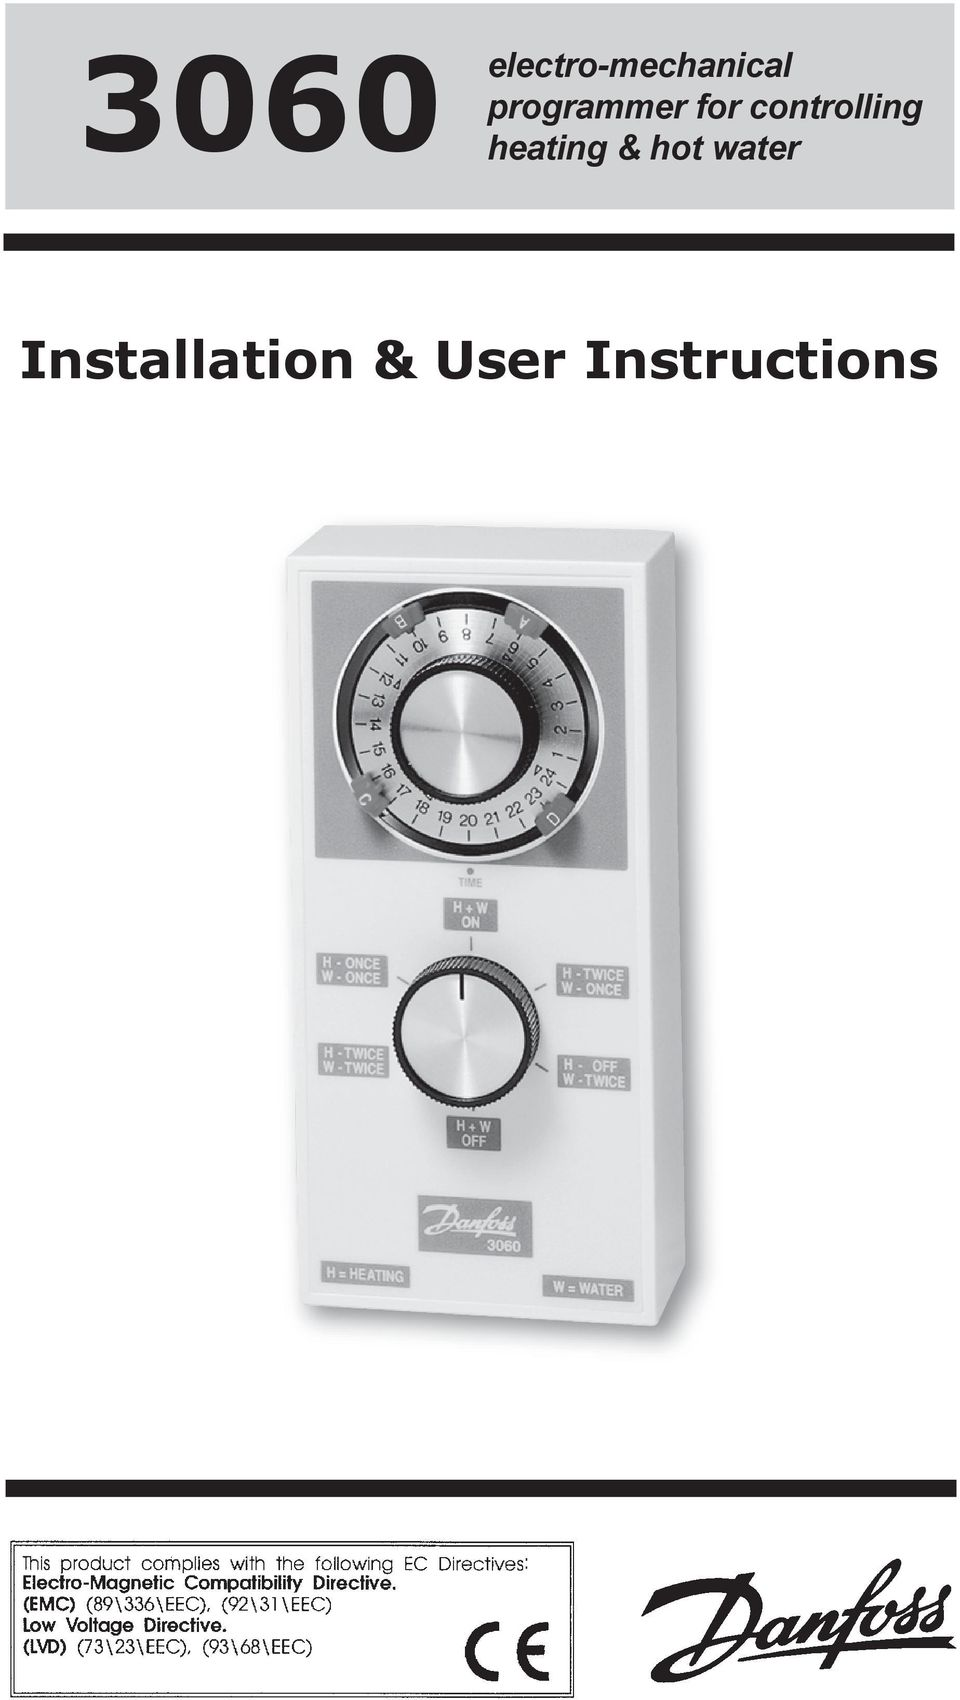 electro-mechanical programmer for controlling heating & hot ... on